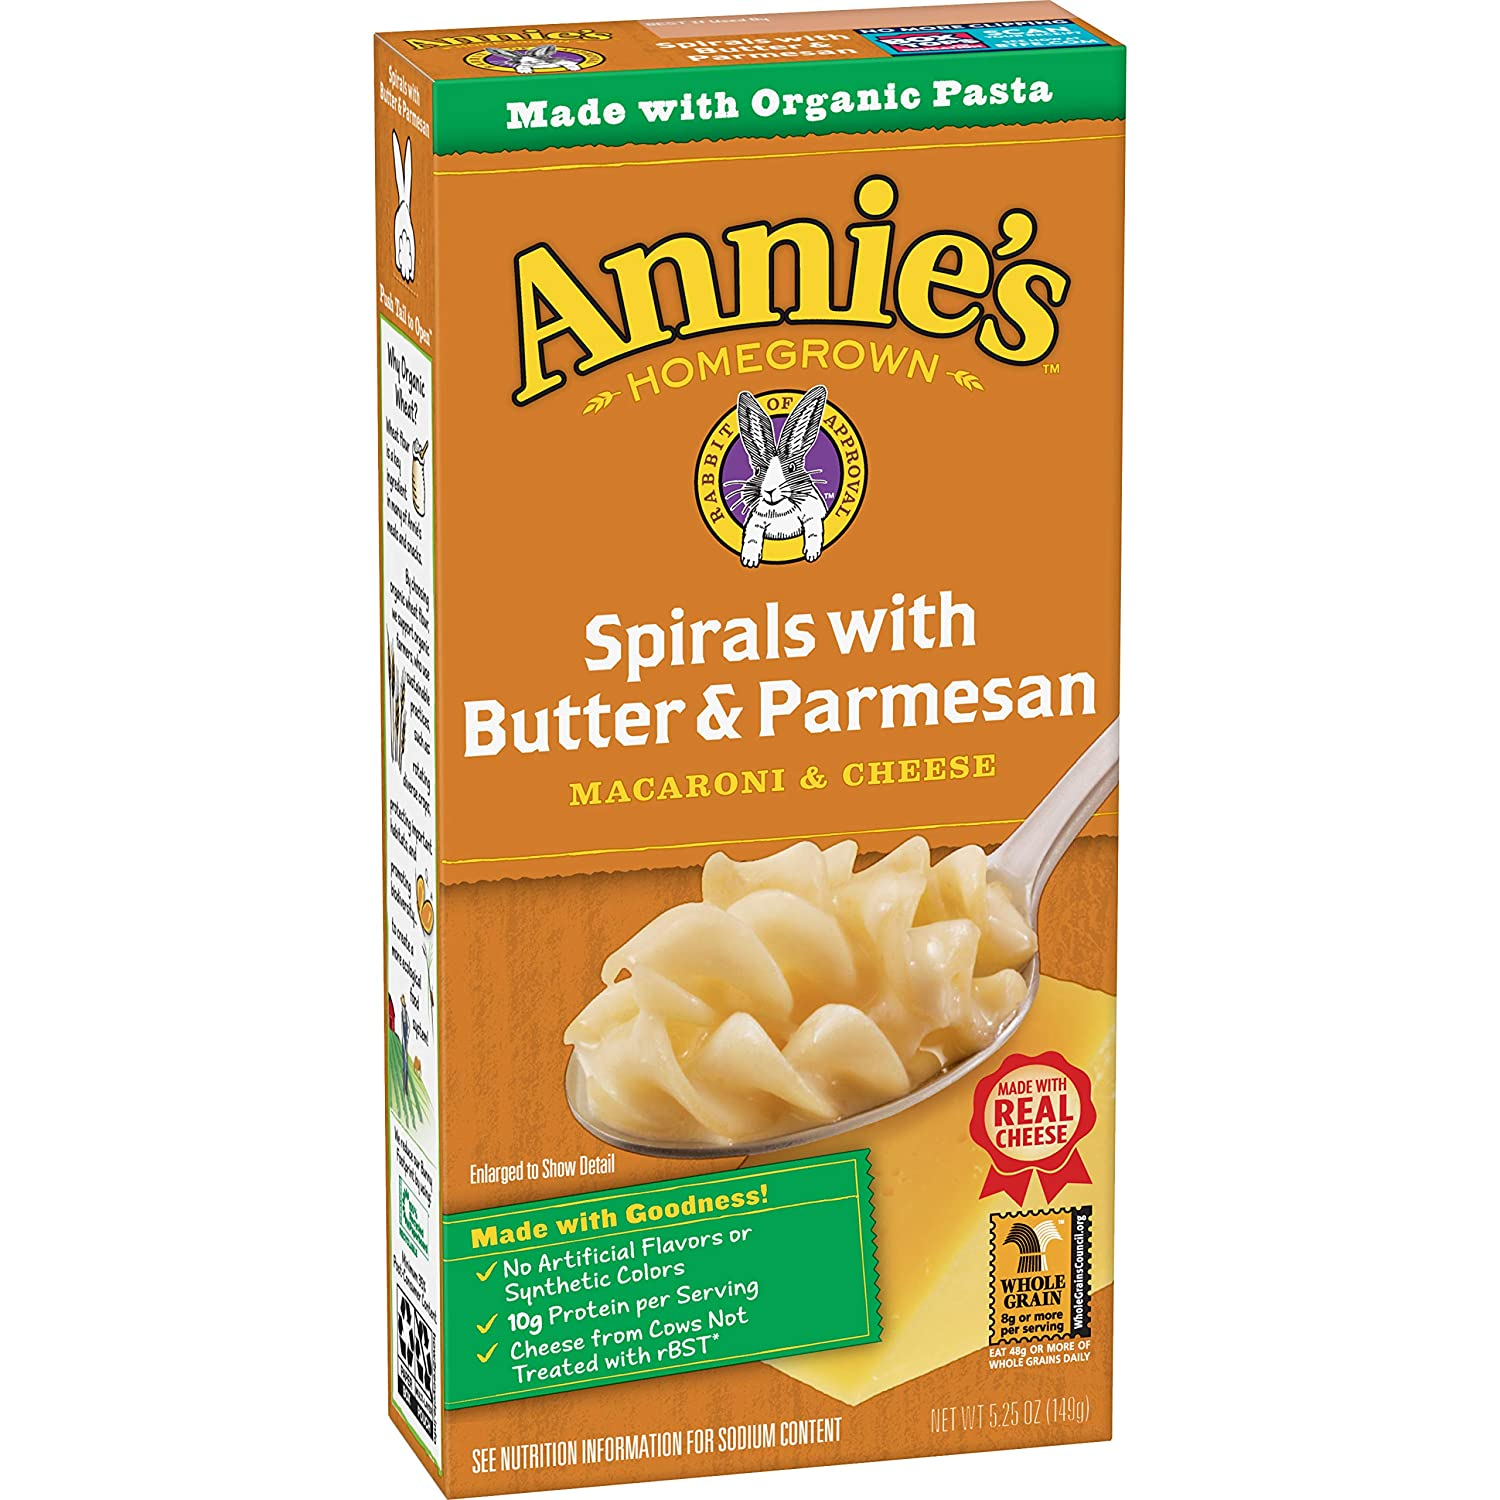 Annie's Spirals mit Butter & Parmesan Macaroni and Cheese, Natural (Pack of 12)